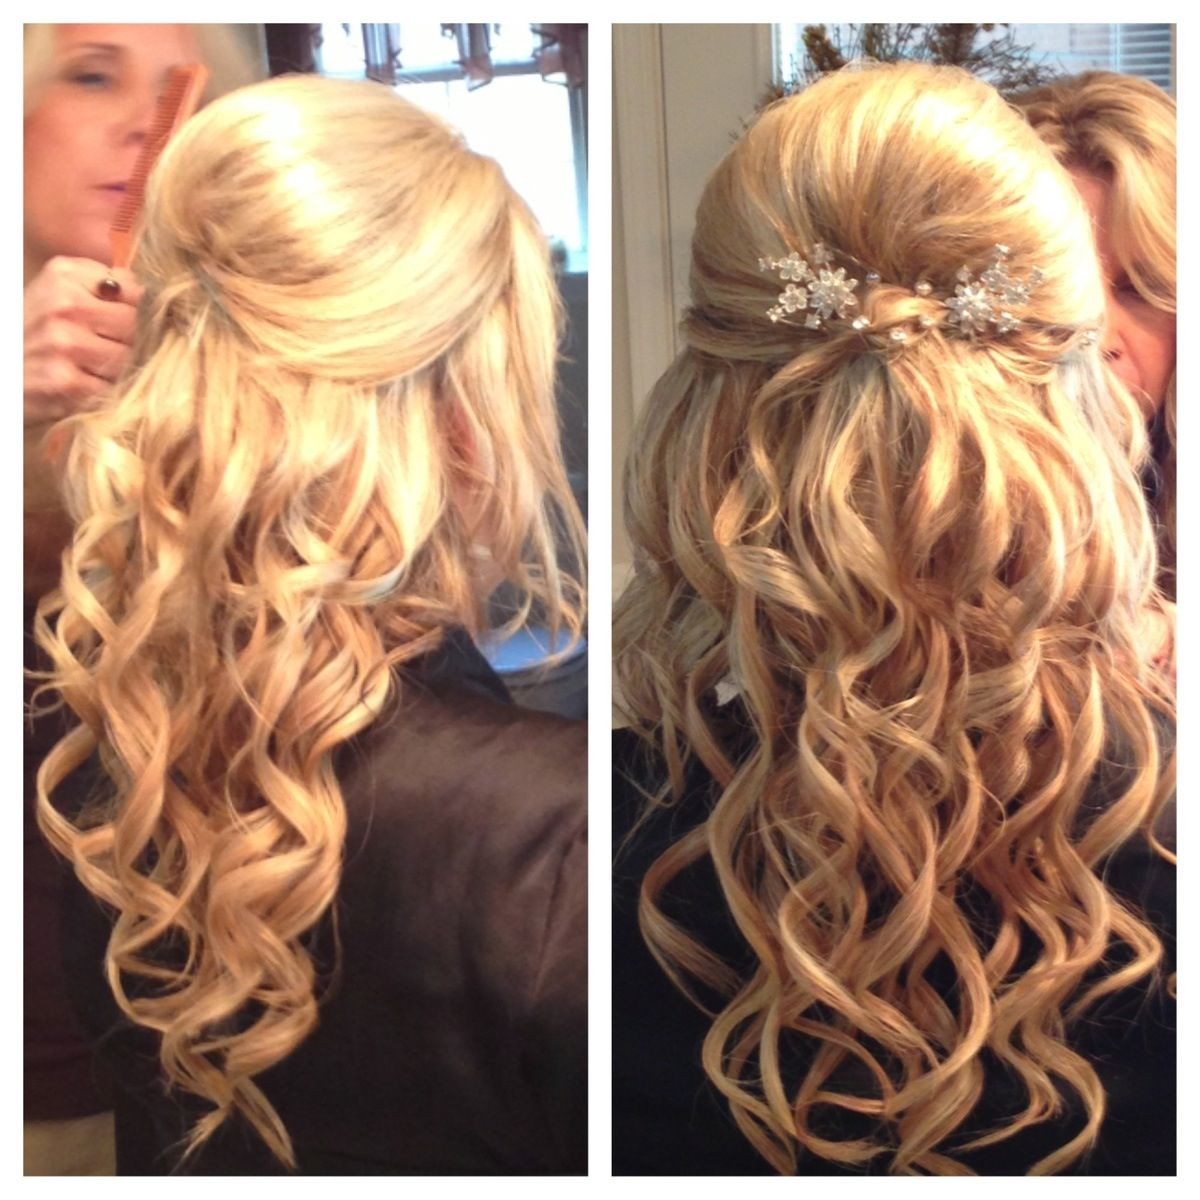 Bump With Curls Homecoming Hair Prom Hair Hair Wedding Hairstyles